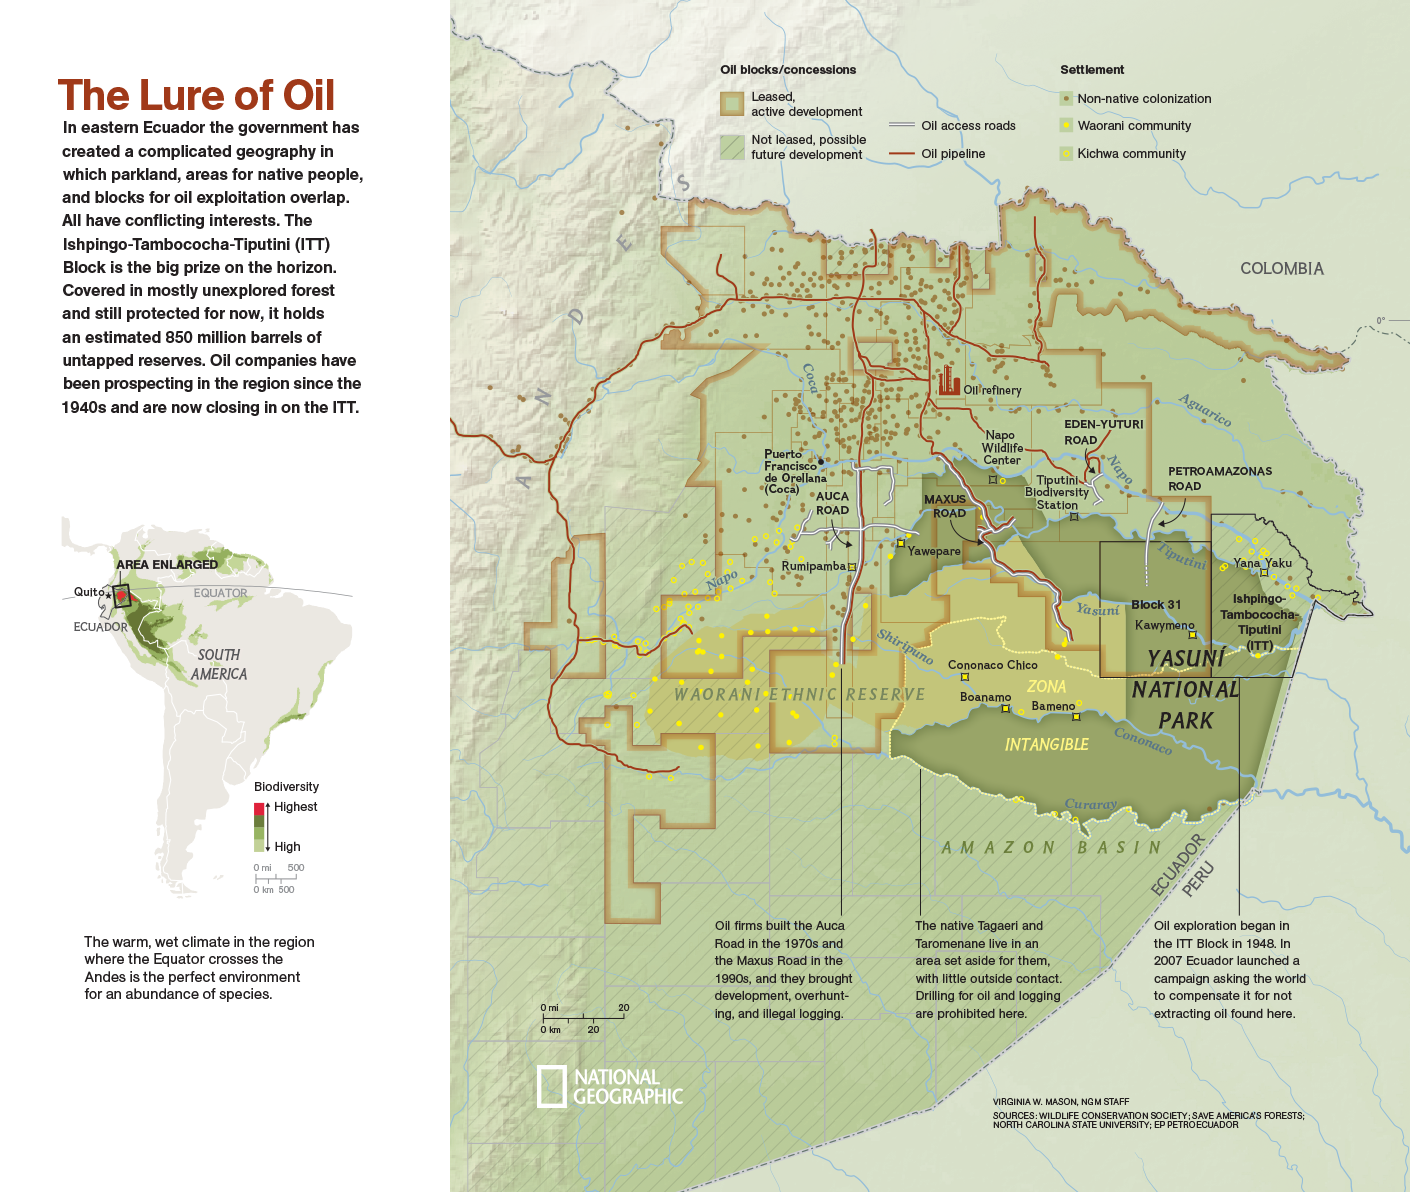 The Lure of Oil